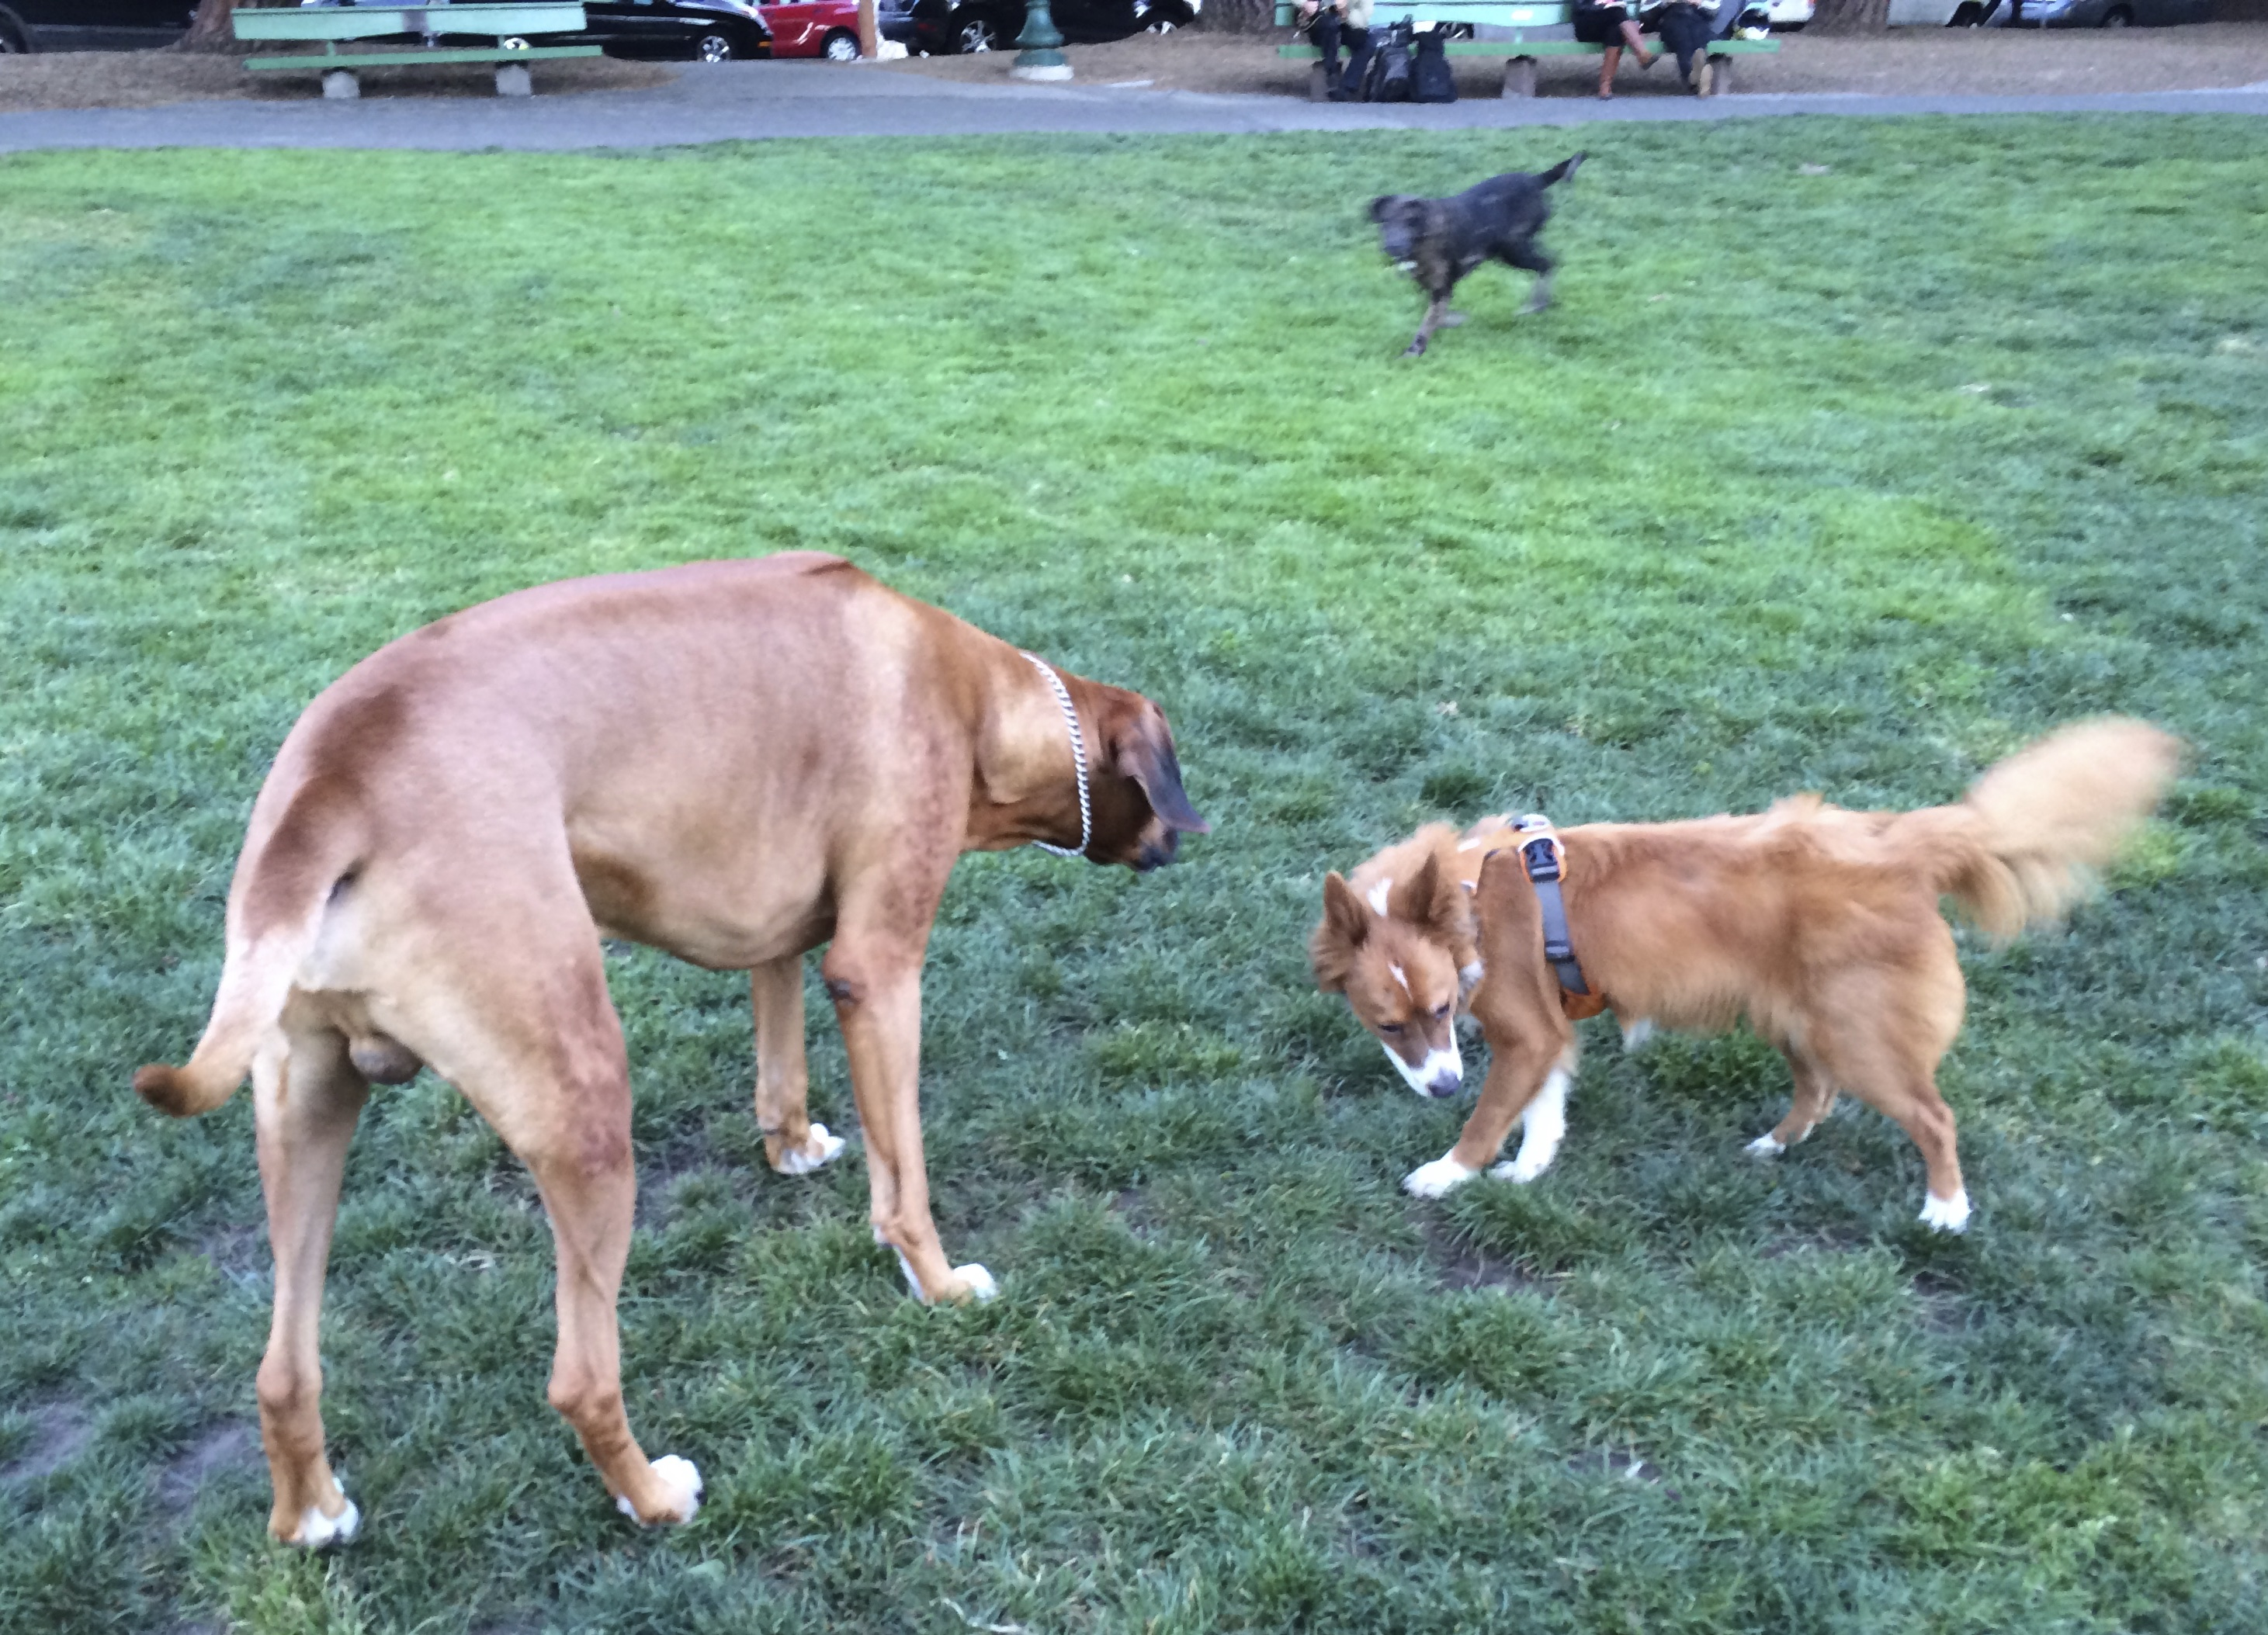 Fawn Great Dane And Icelandic Sheepdog Mix That Looks A Lot Like A Fox Interacting While Blue Leopard Catahoula Cur Dog Blur Runs In The Background